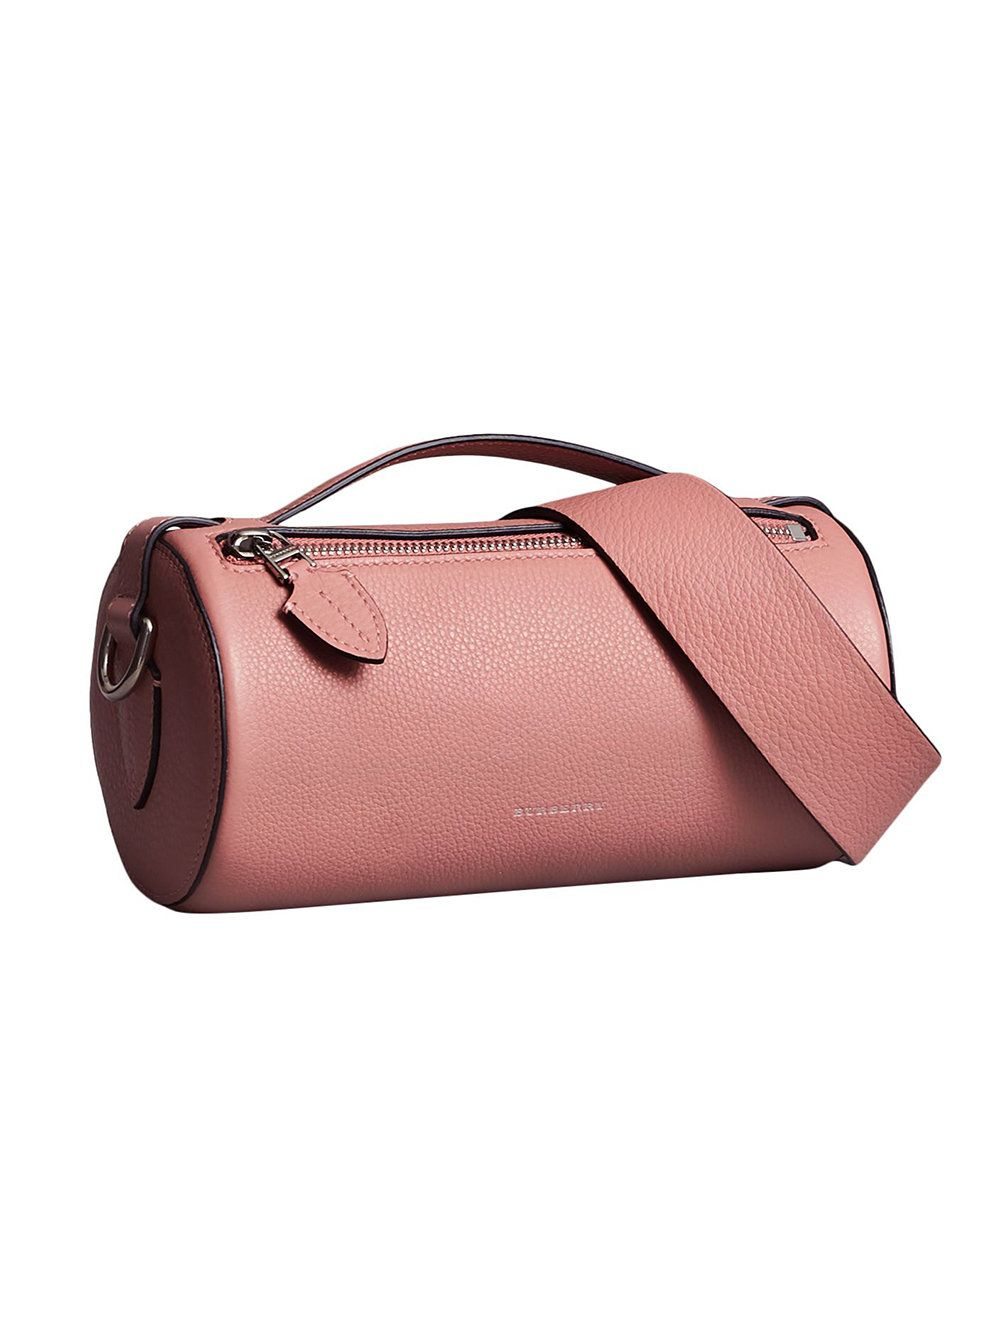 01541a91b6fb Burberry The Leather Barrel Bag in 2018   Fashion Design   Pinterest ...